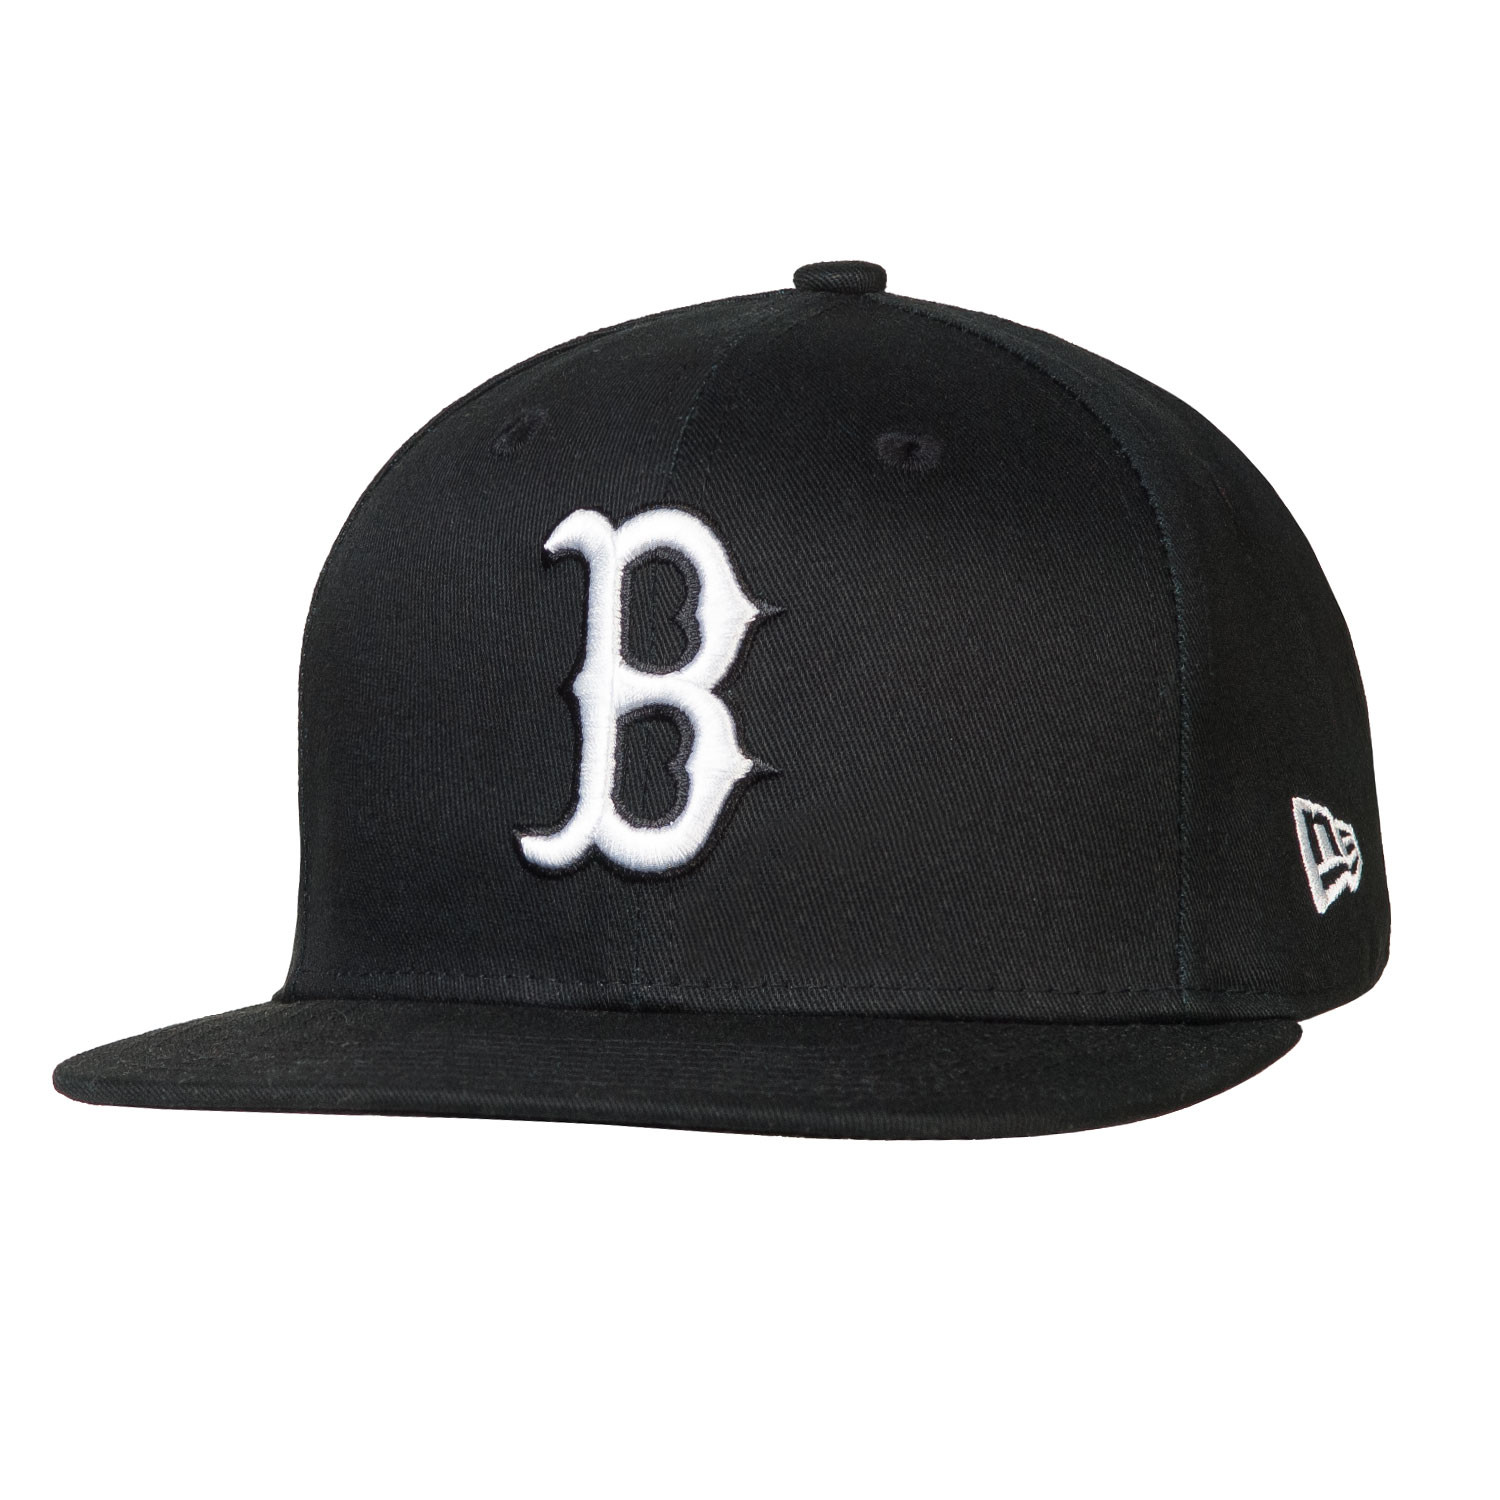 Kšiltovka New Era Boston Red Sox 9Fifty Originator black/white